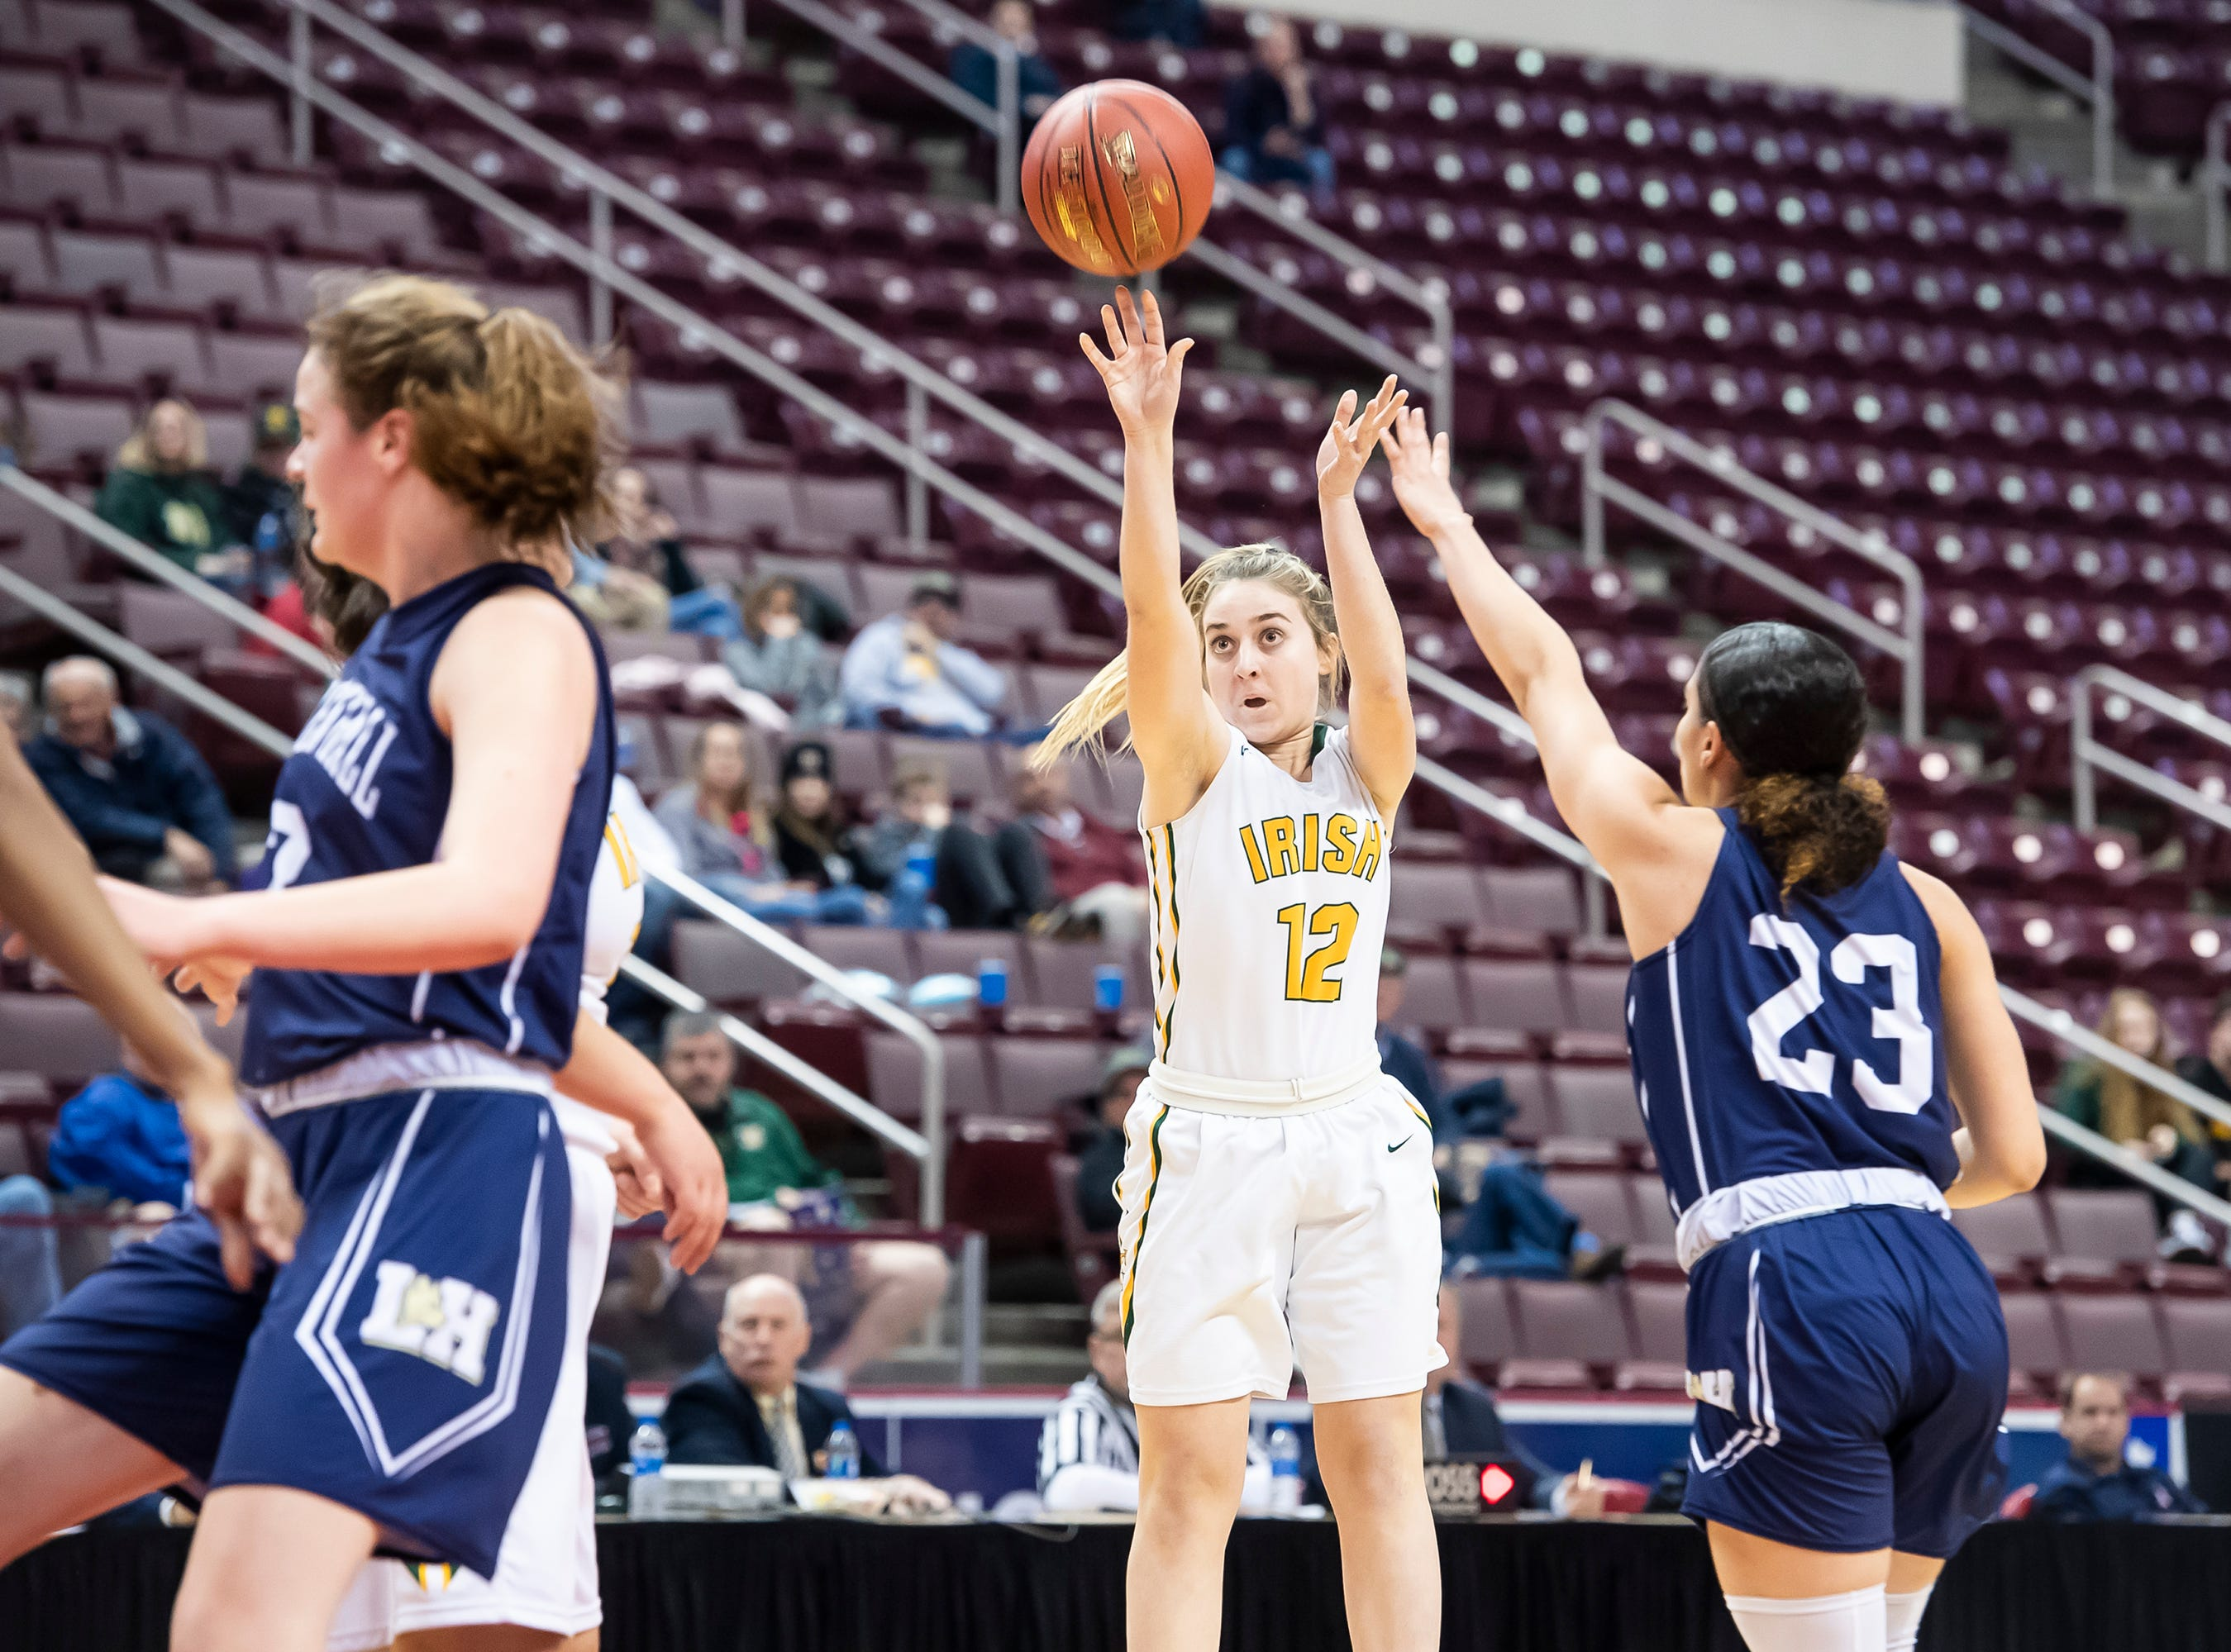 York Catholic's Samantha Bulik lets loose on a 3-point shot during the District 3 2-A girls championship game against Linden Hall at the Giant Center in Hershey Tuesday, Feb. 26, 2019. The Fighting Irish fell 56-27.